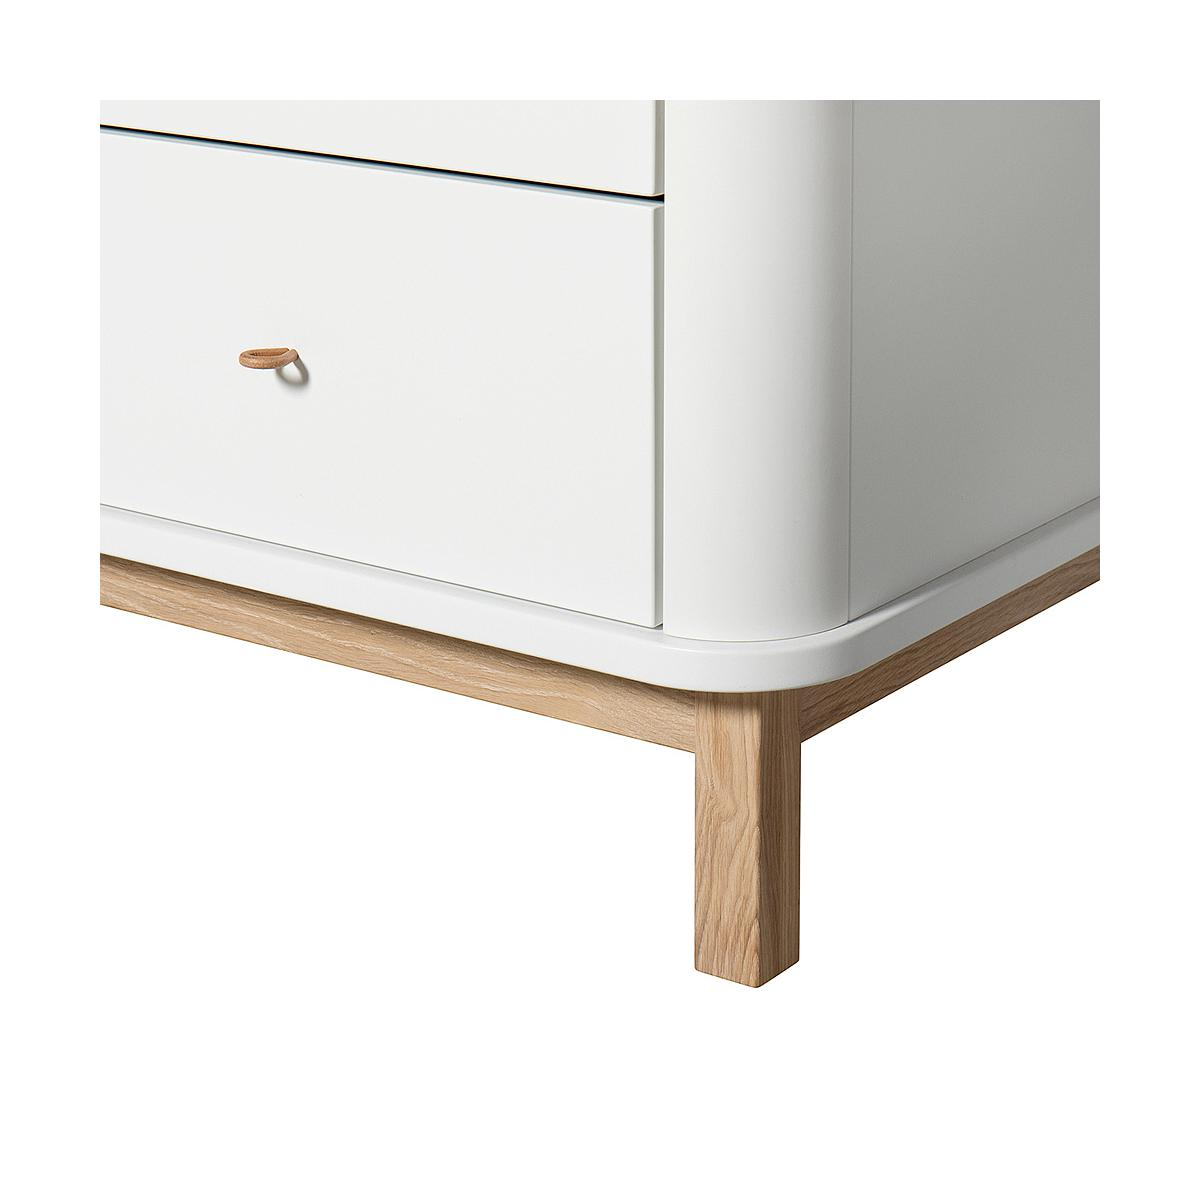 Commode 6 tiroirs WOOD Oliver Furniture blanc-chêne